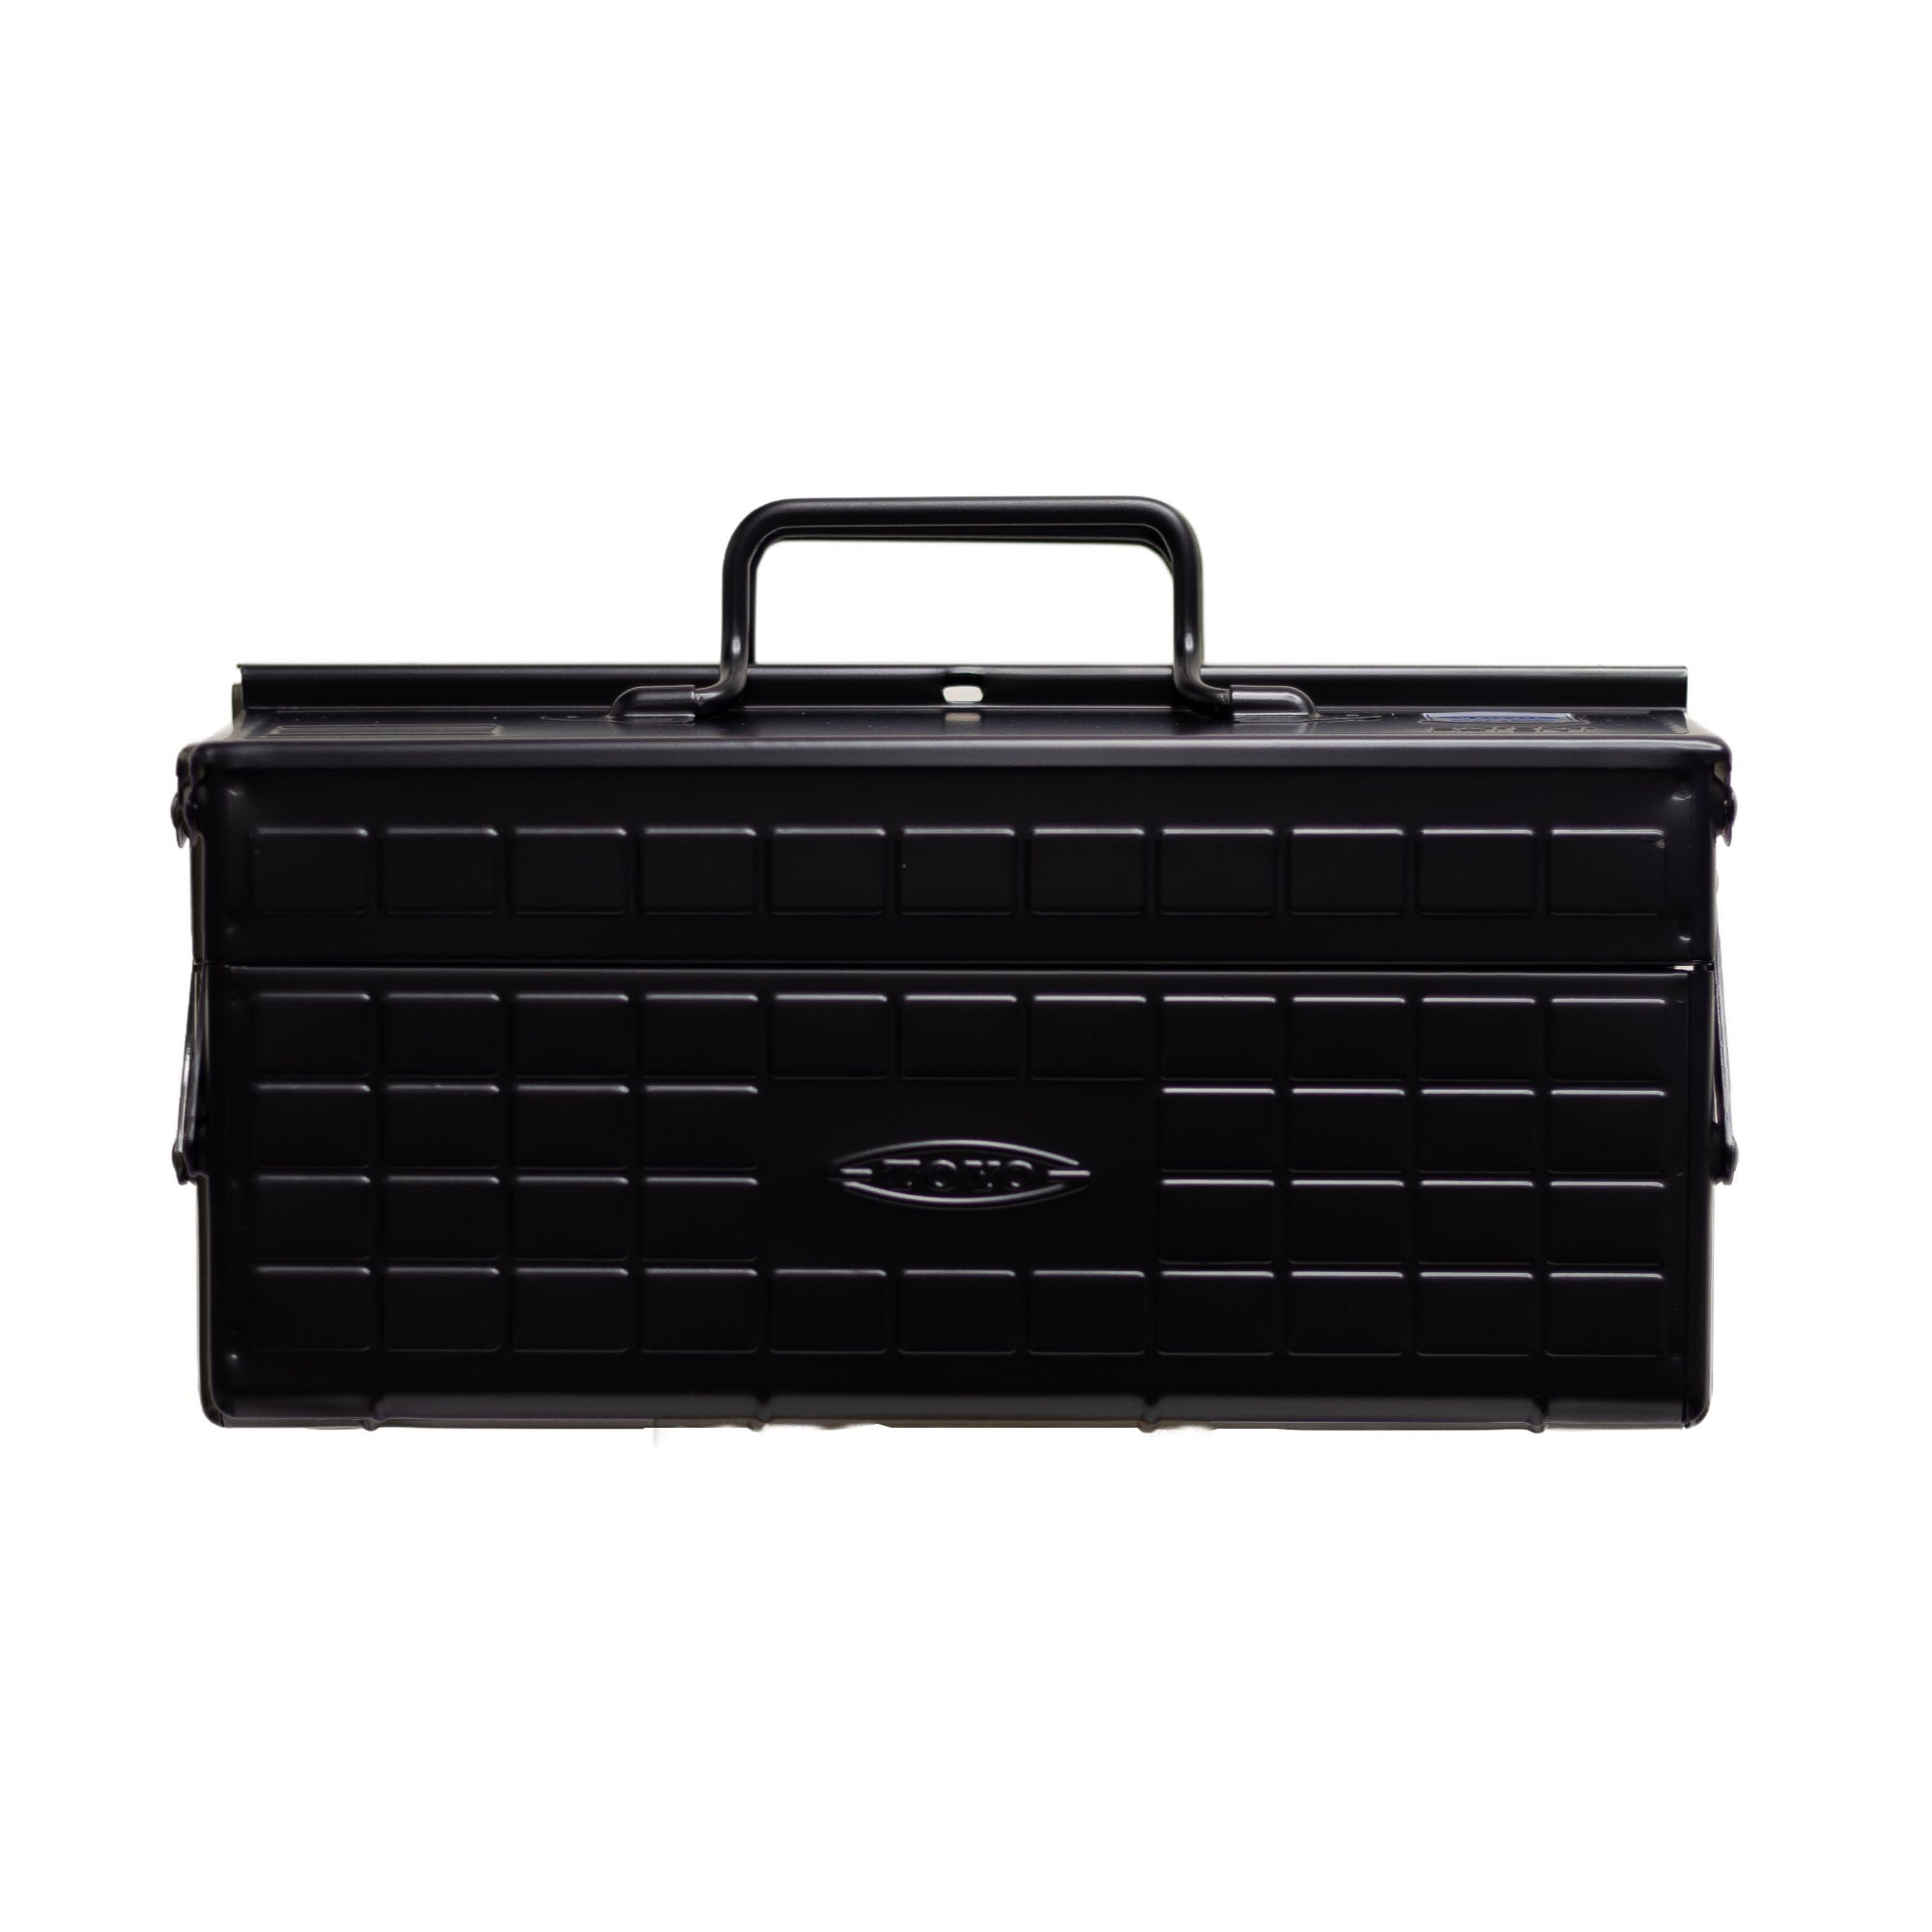 Toyo ST-350 Steel Toolbox , Black